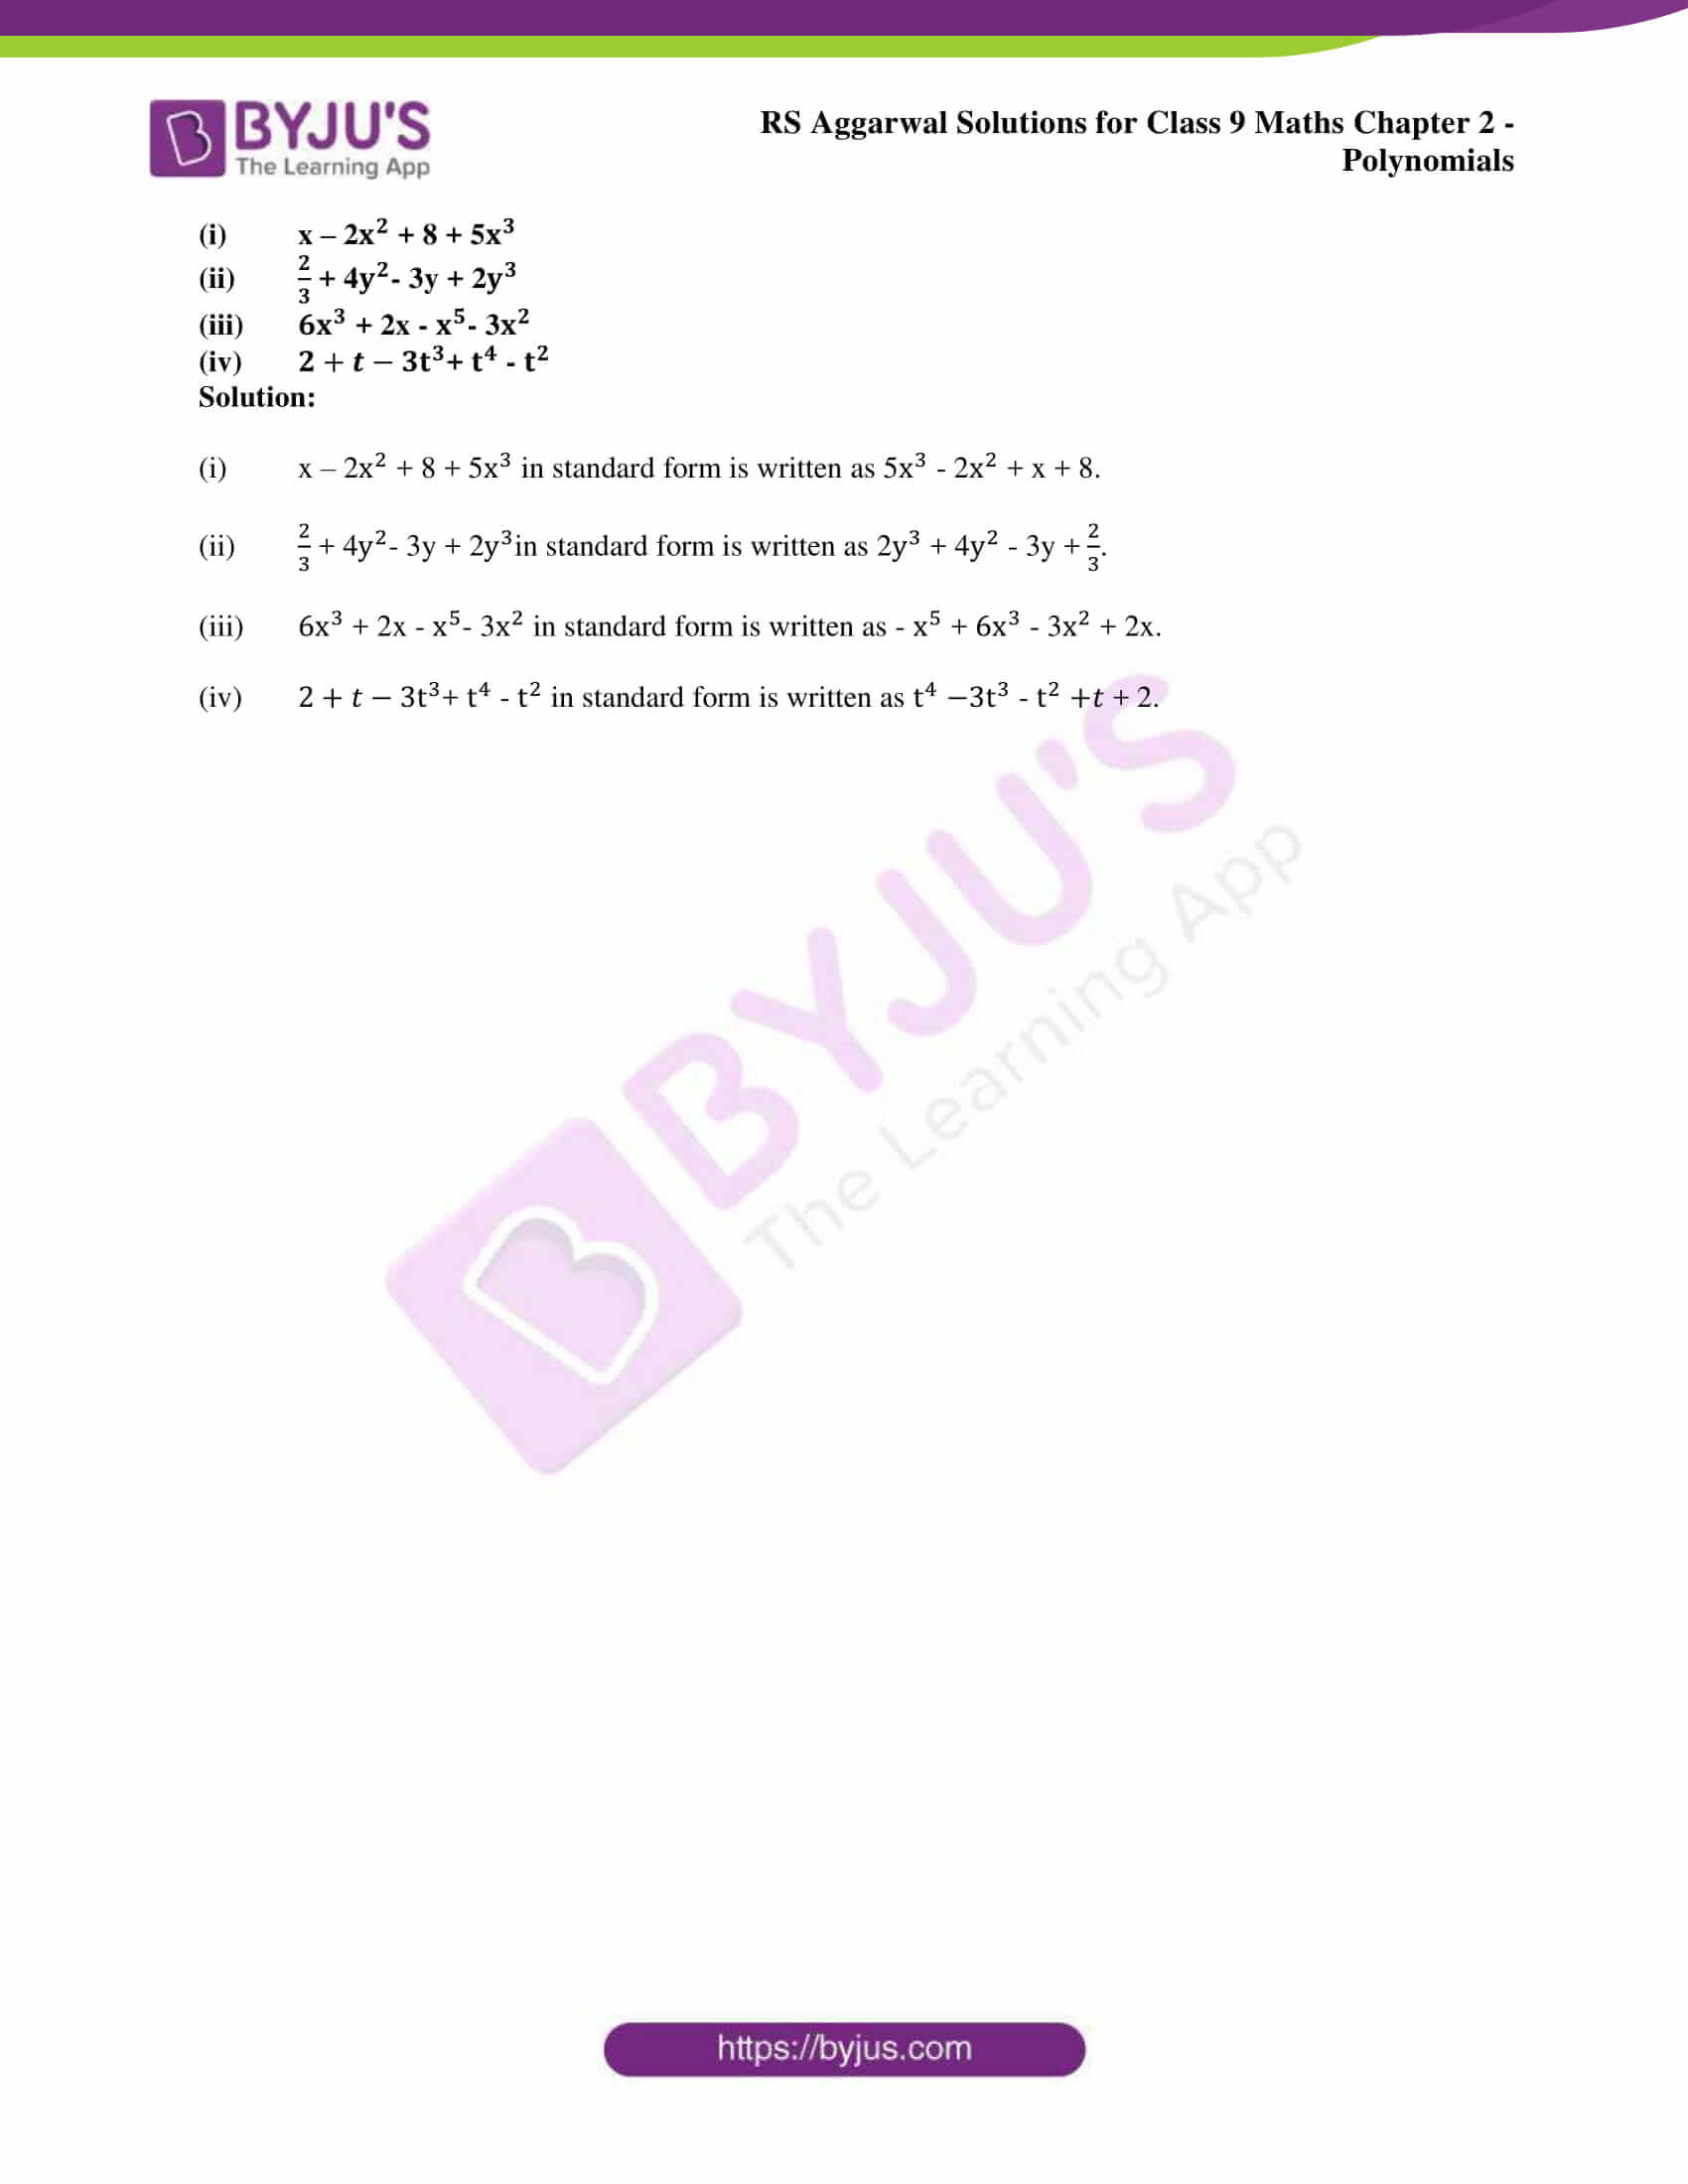 RS Aggarwal Sol class 9 Maths Chapter 2